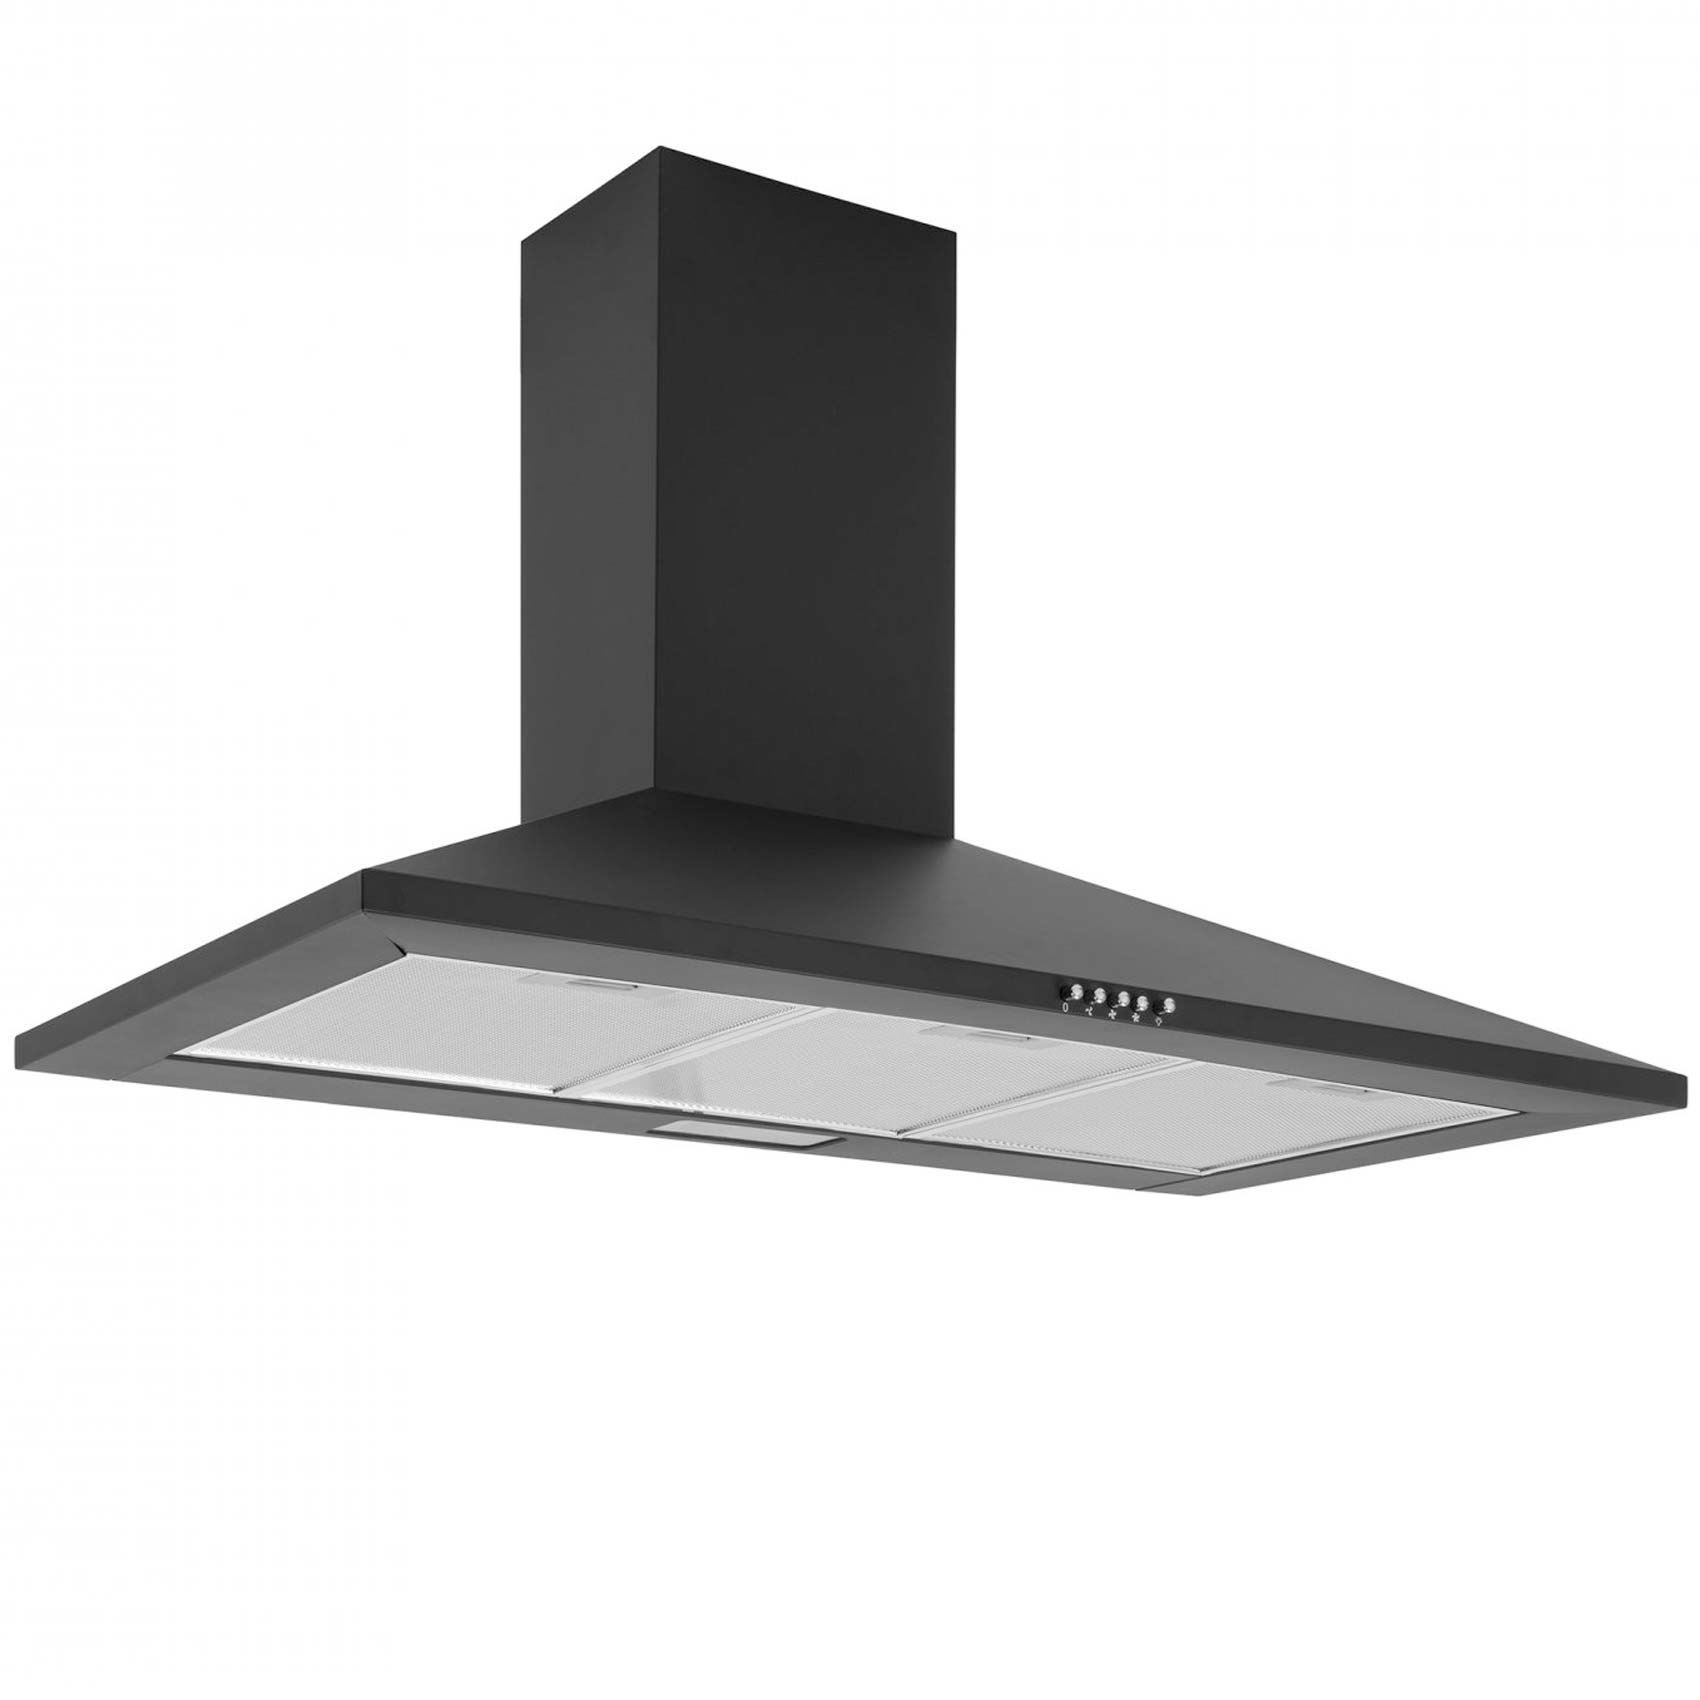 Picture of CCH901BK Wall Chimney Hood